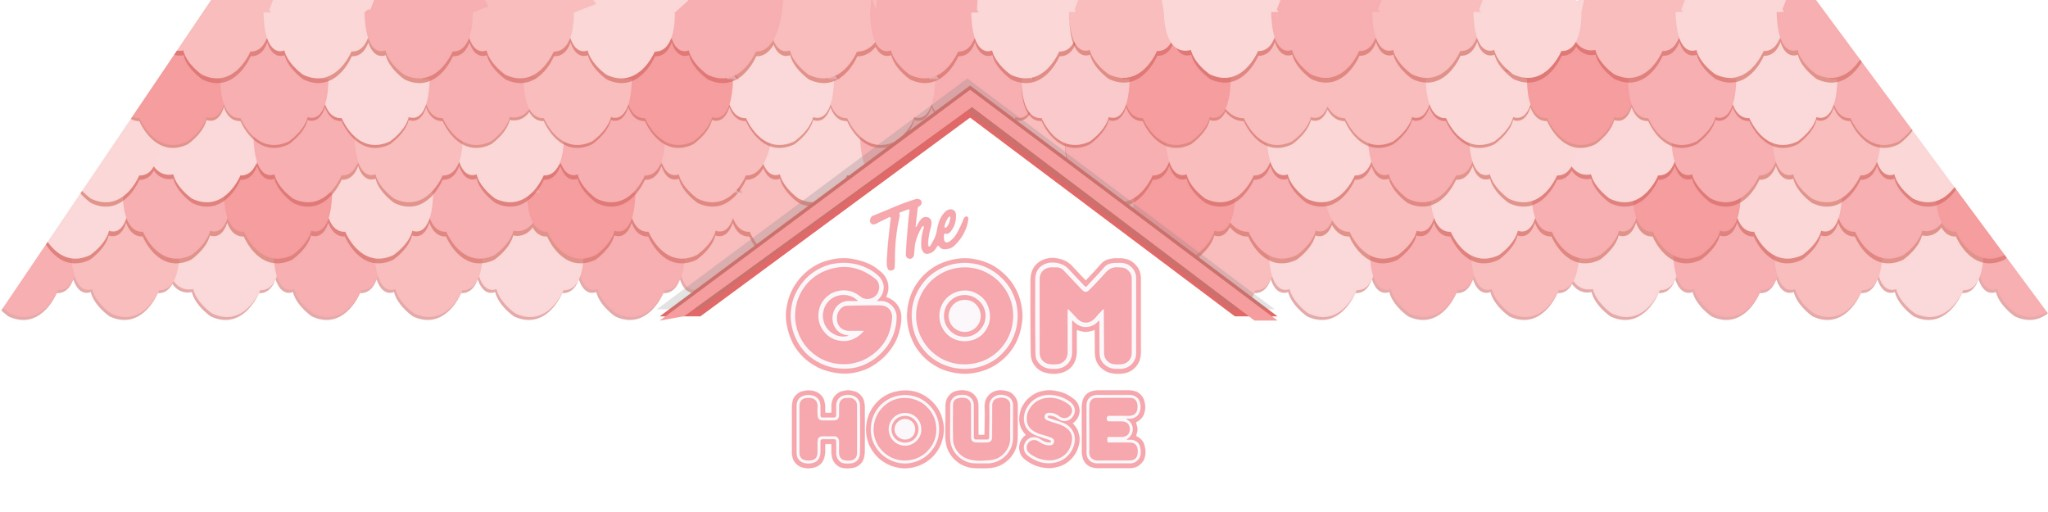 The Gom House